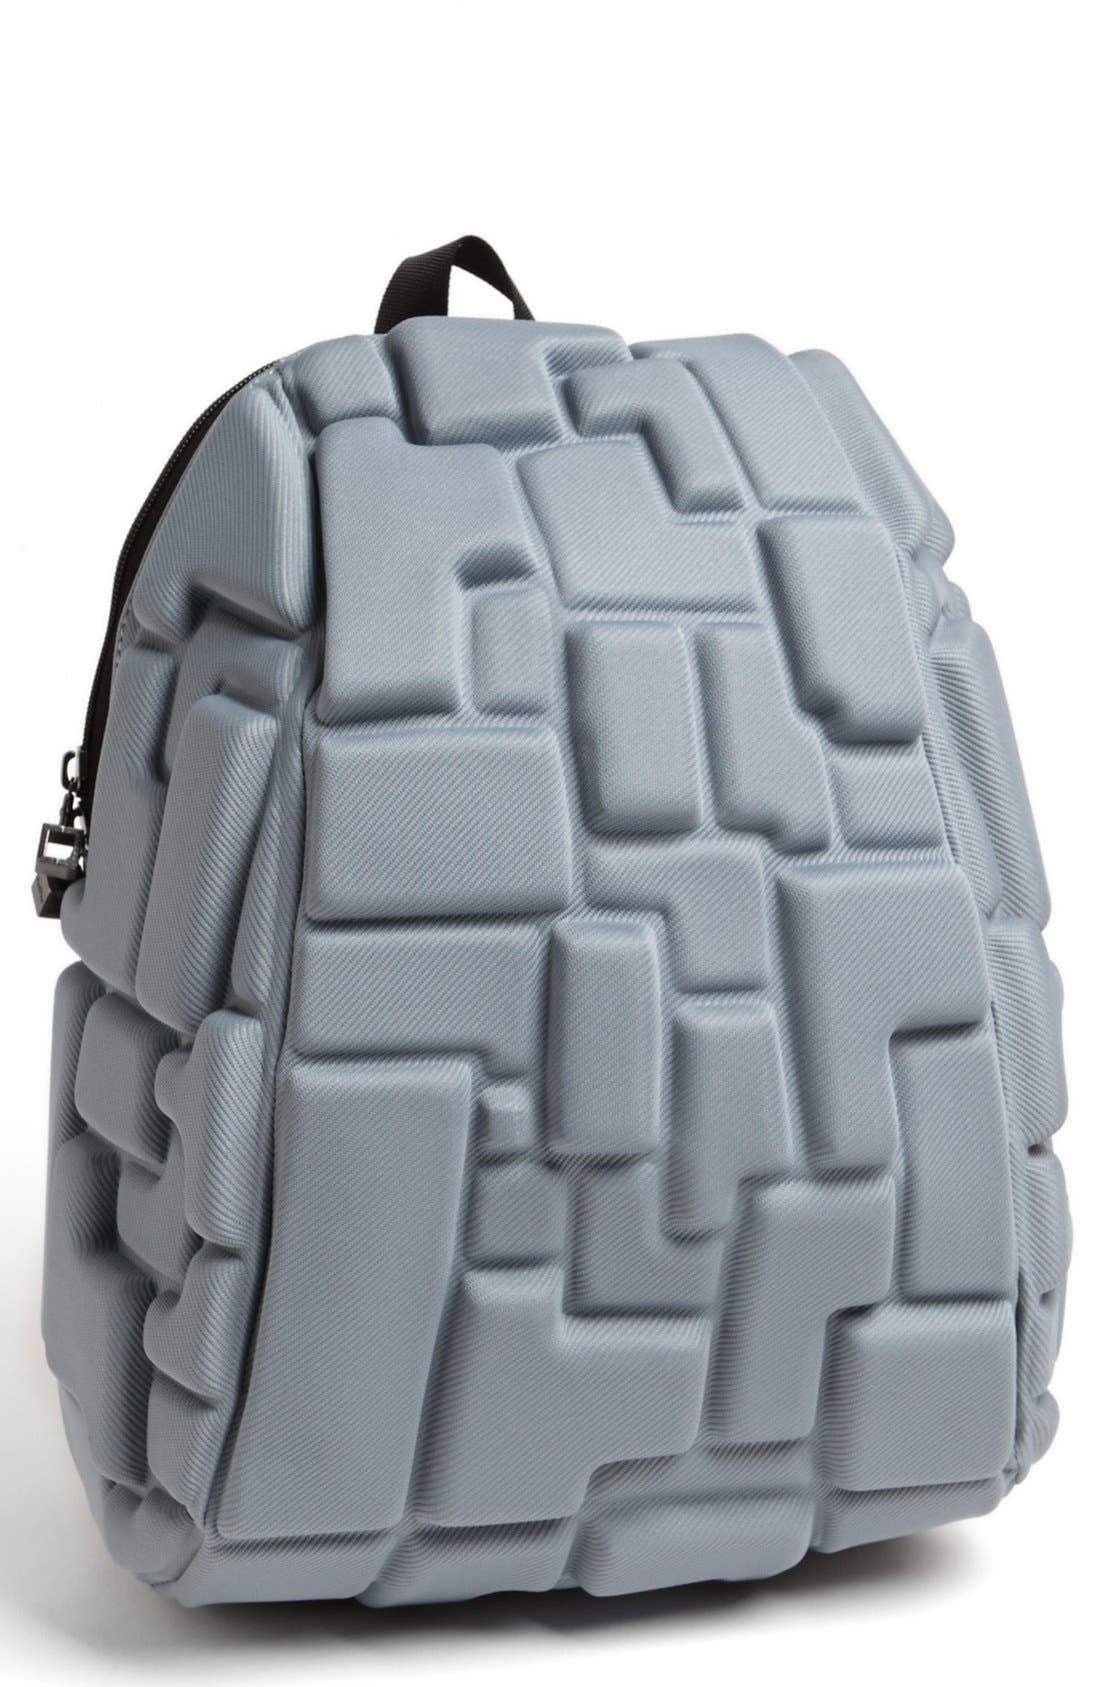 Main Image - MadPax 'The Blok' Half-Pack Backpack (Toddler Boys & Little Boys)